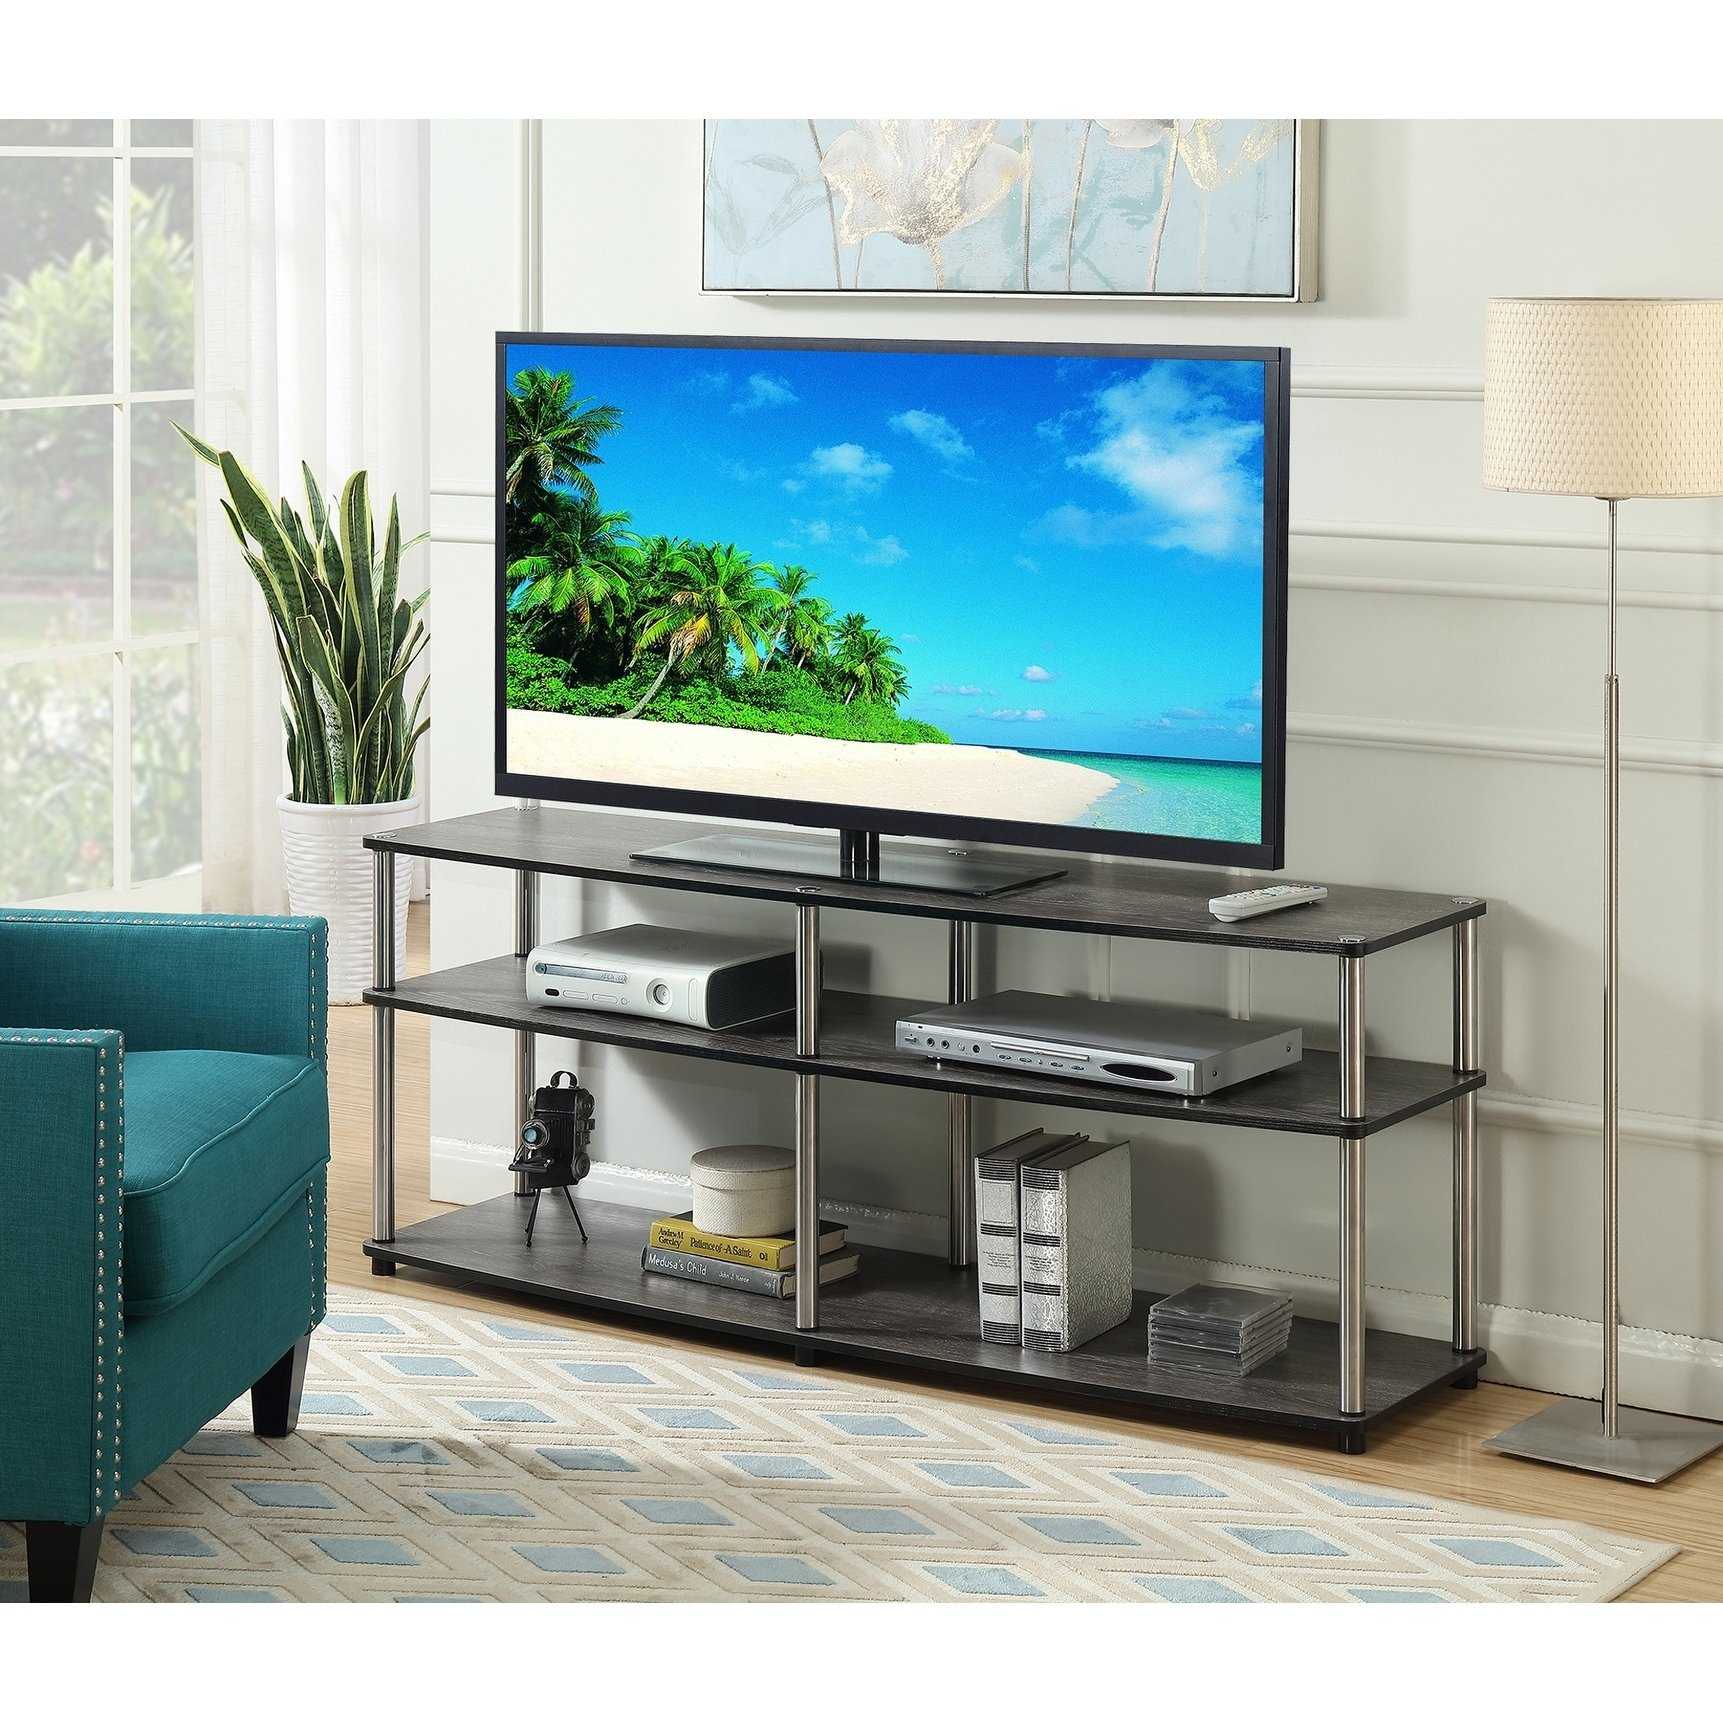 Buy Grey, 42 - 60 Inches Tv Stands & Entertainment Centers Online At throughout Canyon 64 Inch Tv Stands (Image 6 of 30)